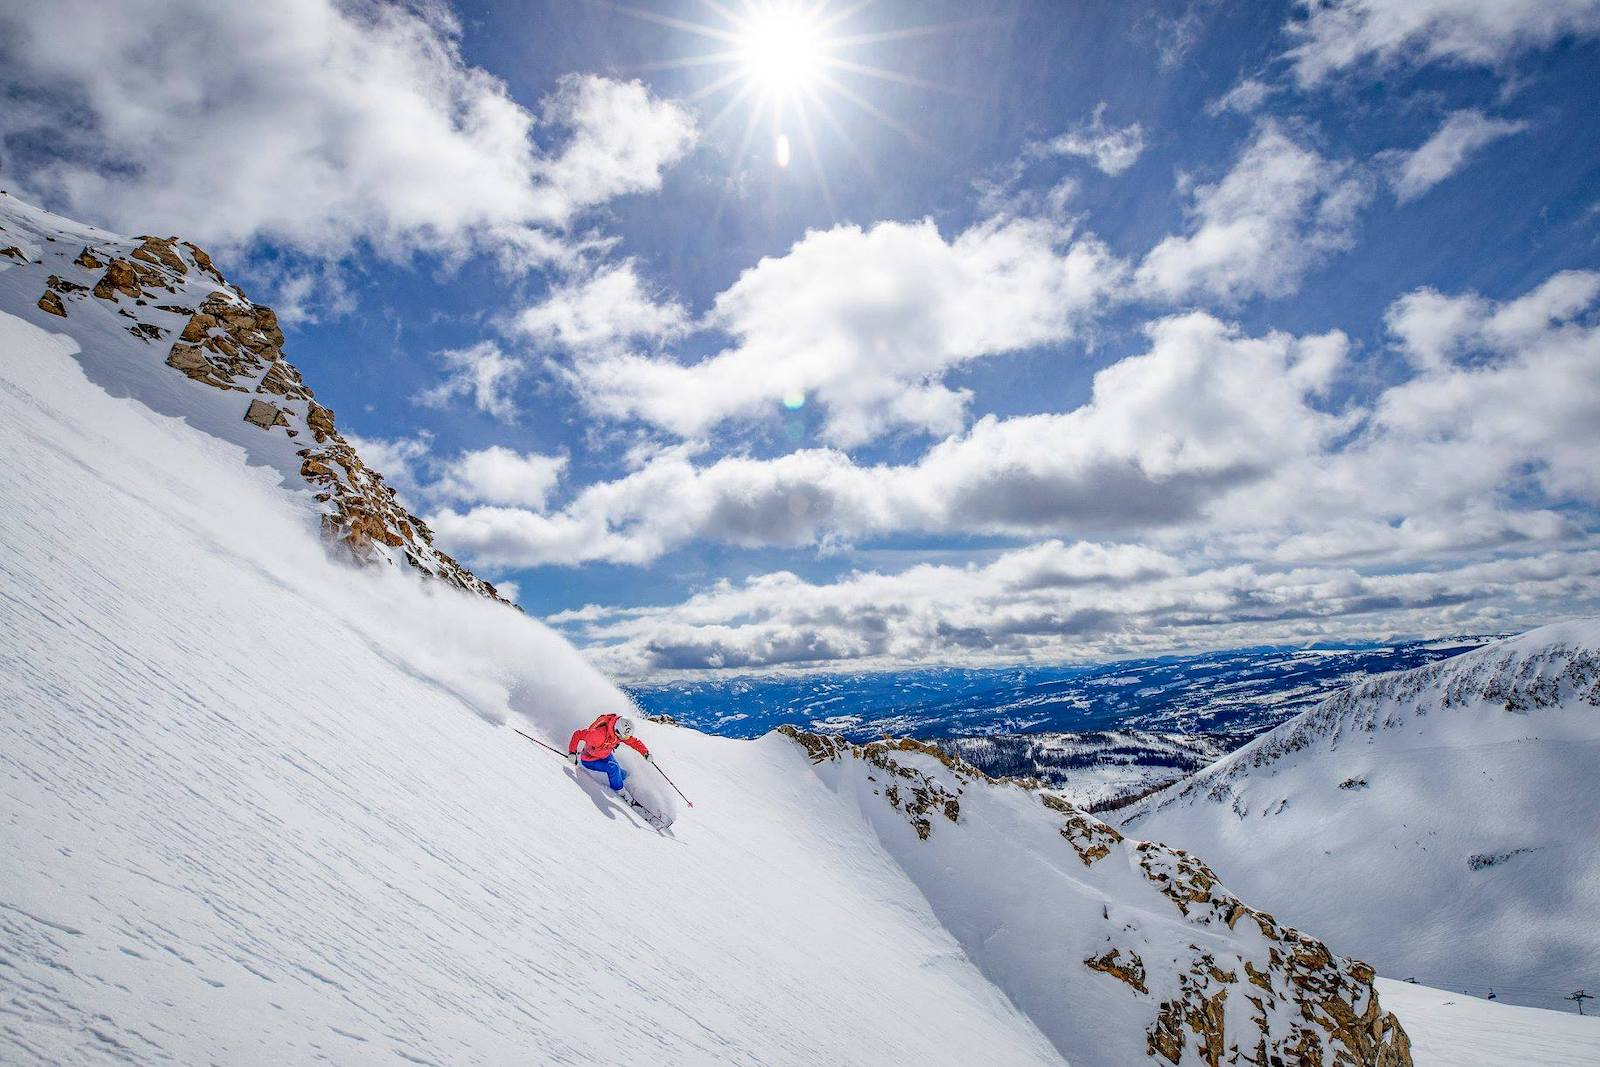 Image of a skier in red hitting the slopes at Big Sky Ski Resort in Montana on a bluebird day